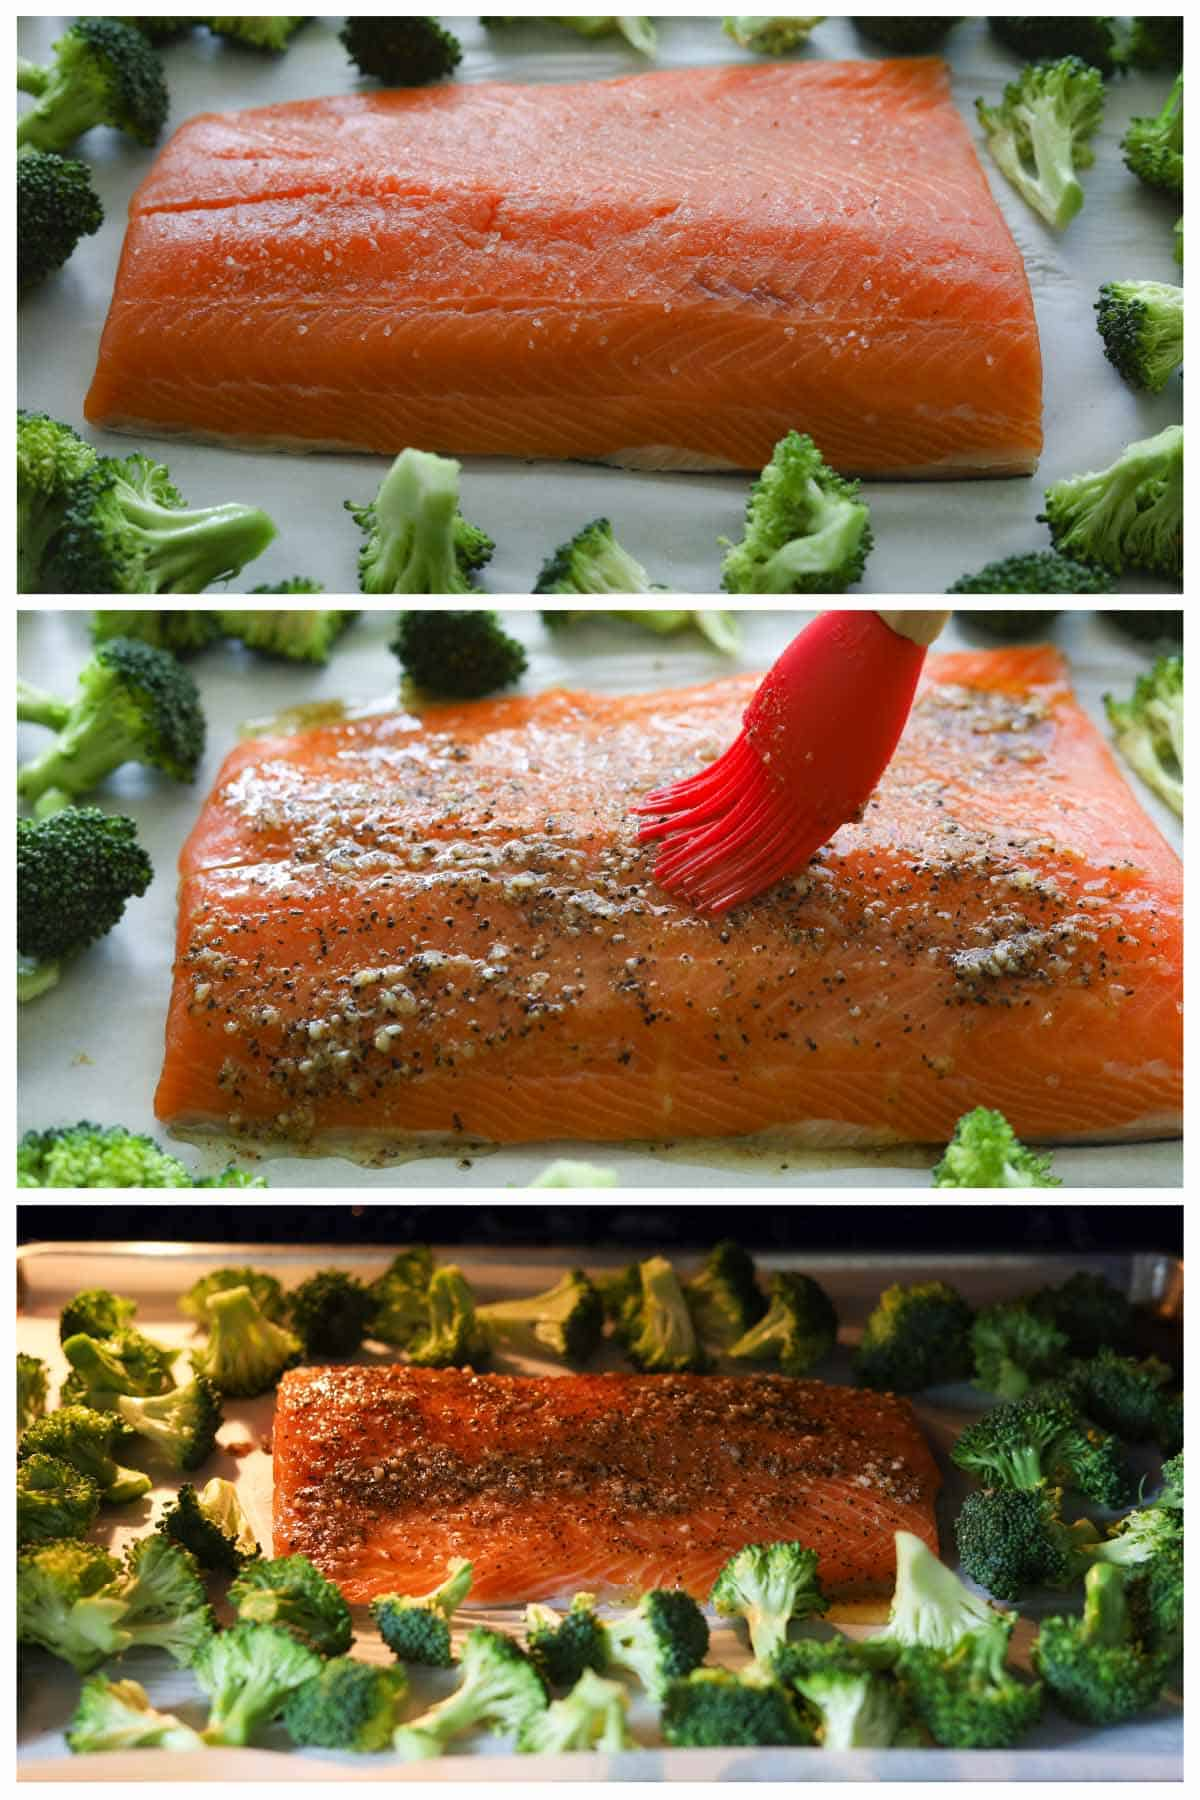 Grid image. Top image of uncooked salmon and broccoli on a roasting pan. Middle image of a brush brushing seasoning on to salmon fillet. Bottom image of salmon pan roasting in oven.